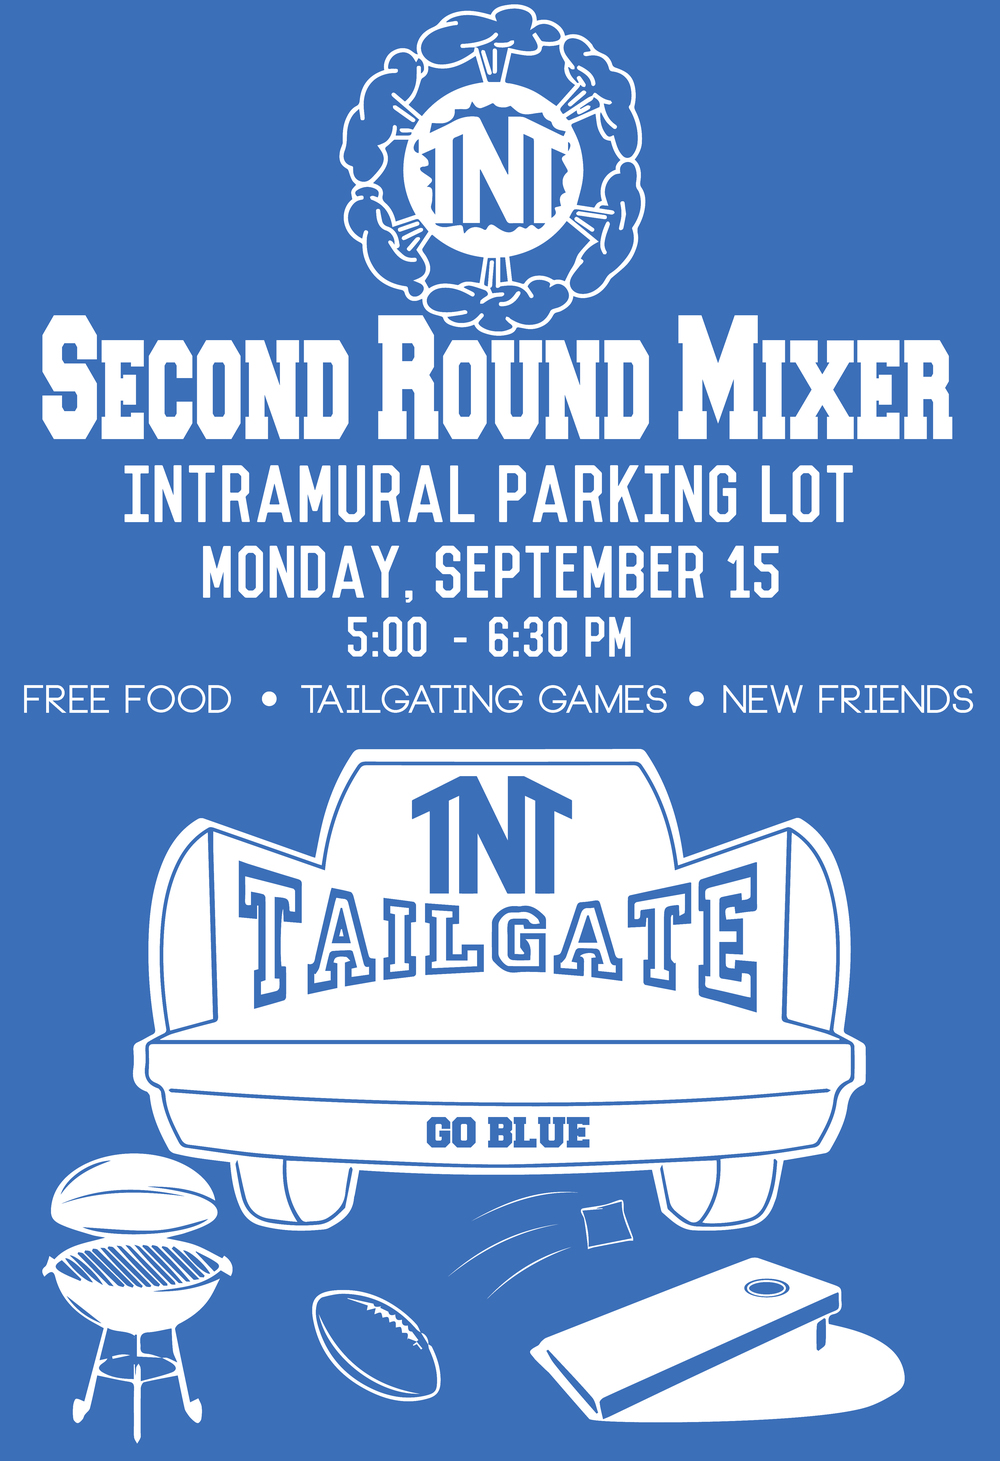 A poster design for the Second Round Mixer.